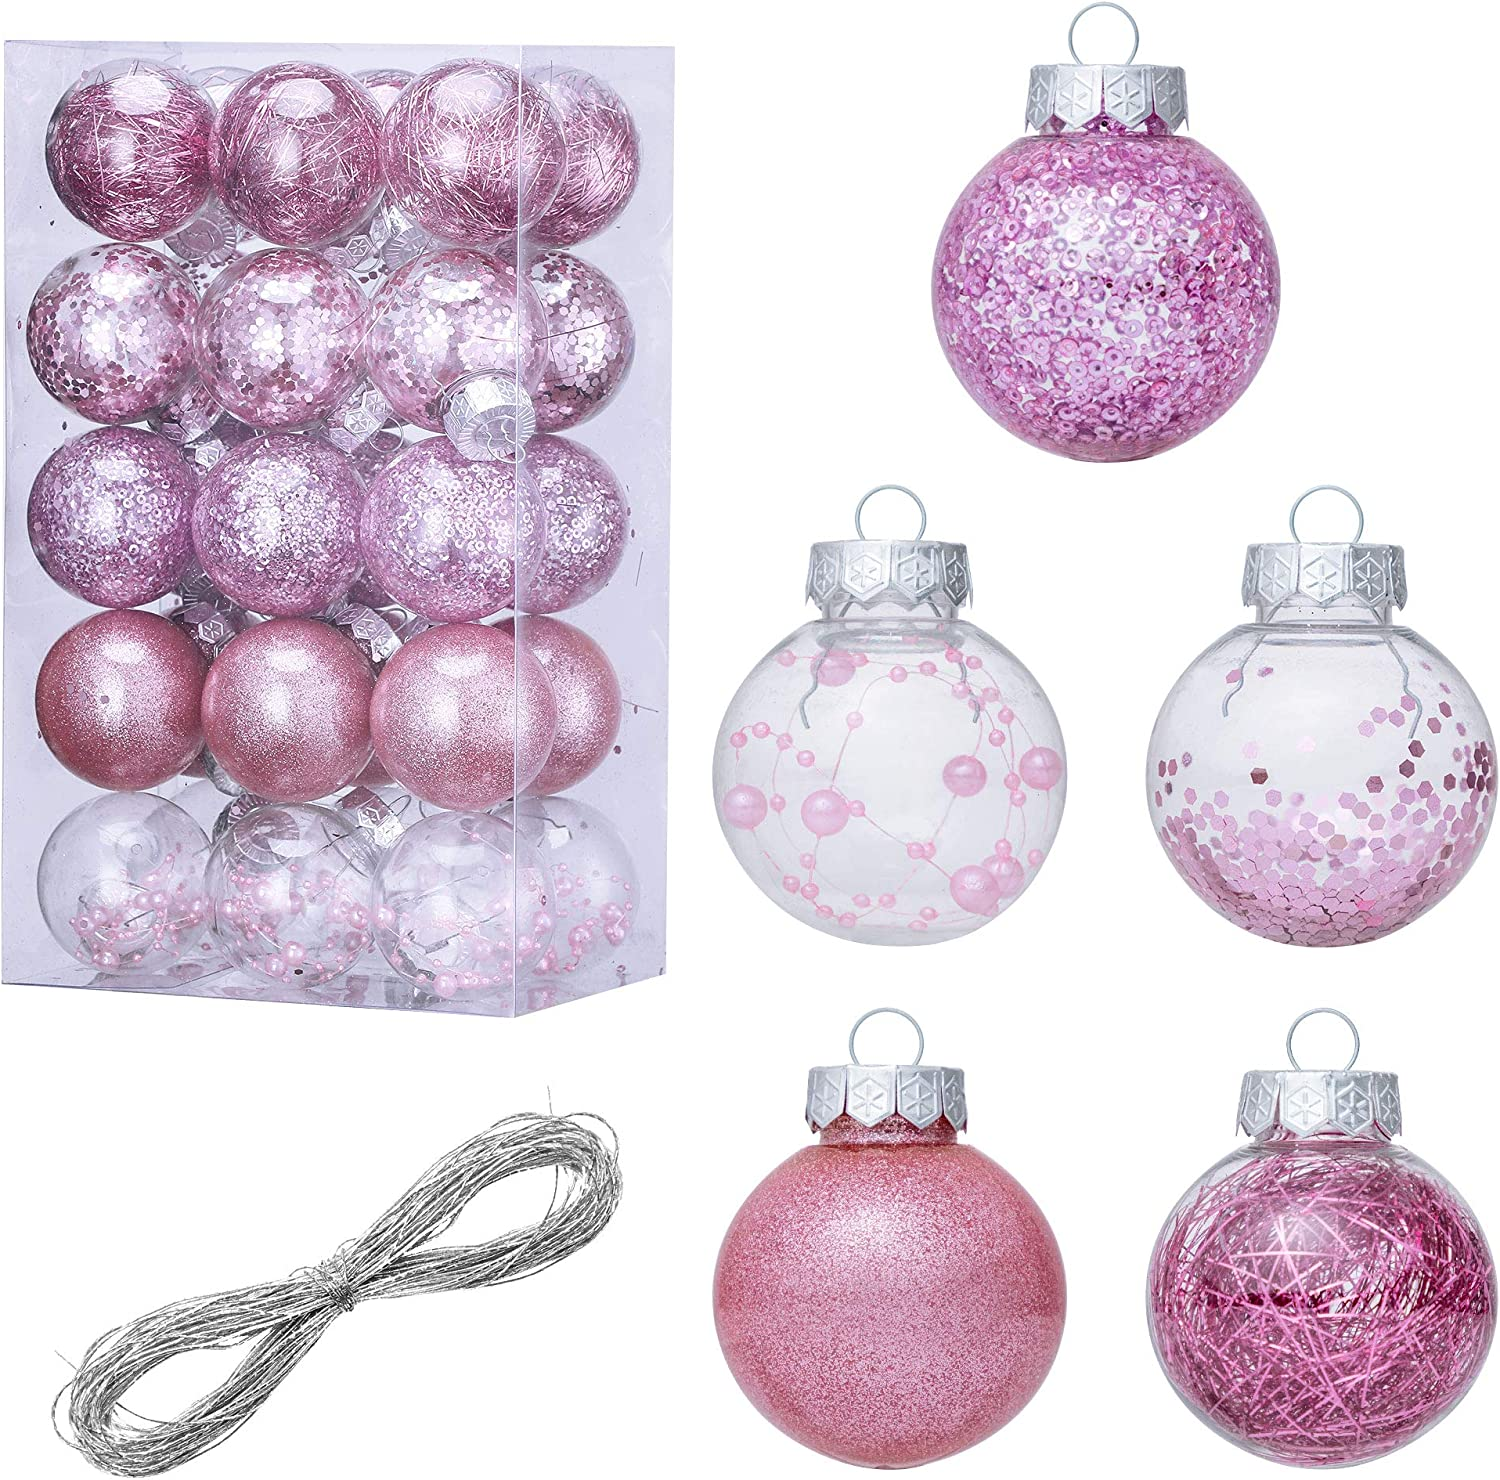 LessMo 30 Pcs Christmas Ball Ornament, Shatterproof Clear Plastic Christmas Decorative Ball, Hanging Christmas Ball Baubles Set with Stuffed Delicate Decor, for Holiday Wedding Party Tree Decoration